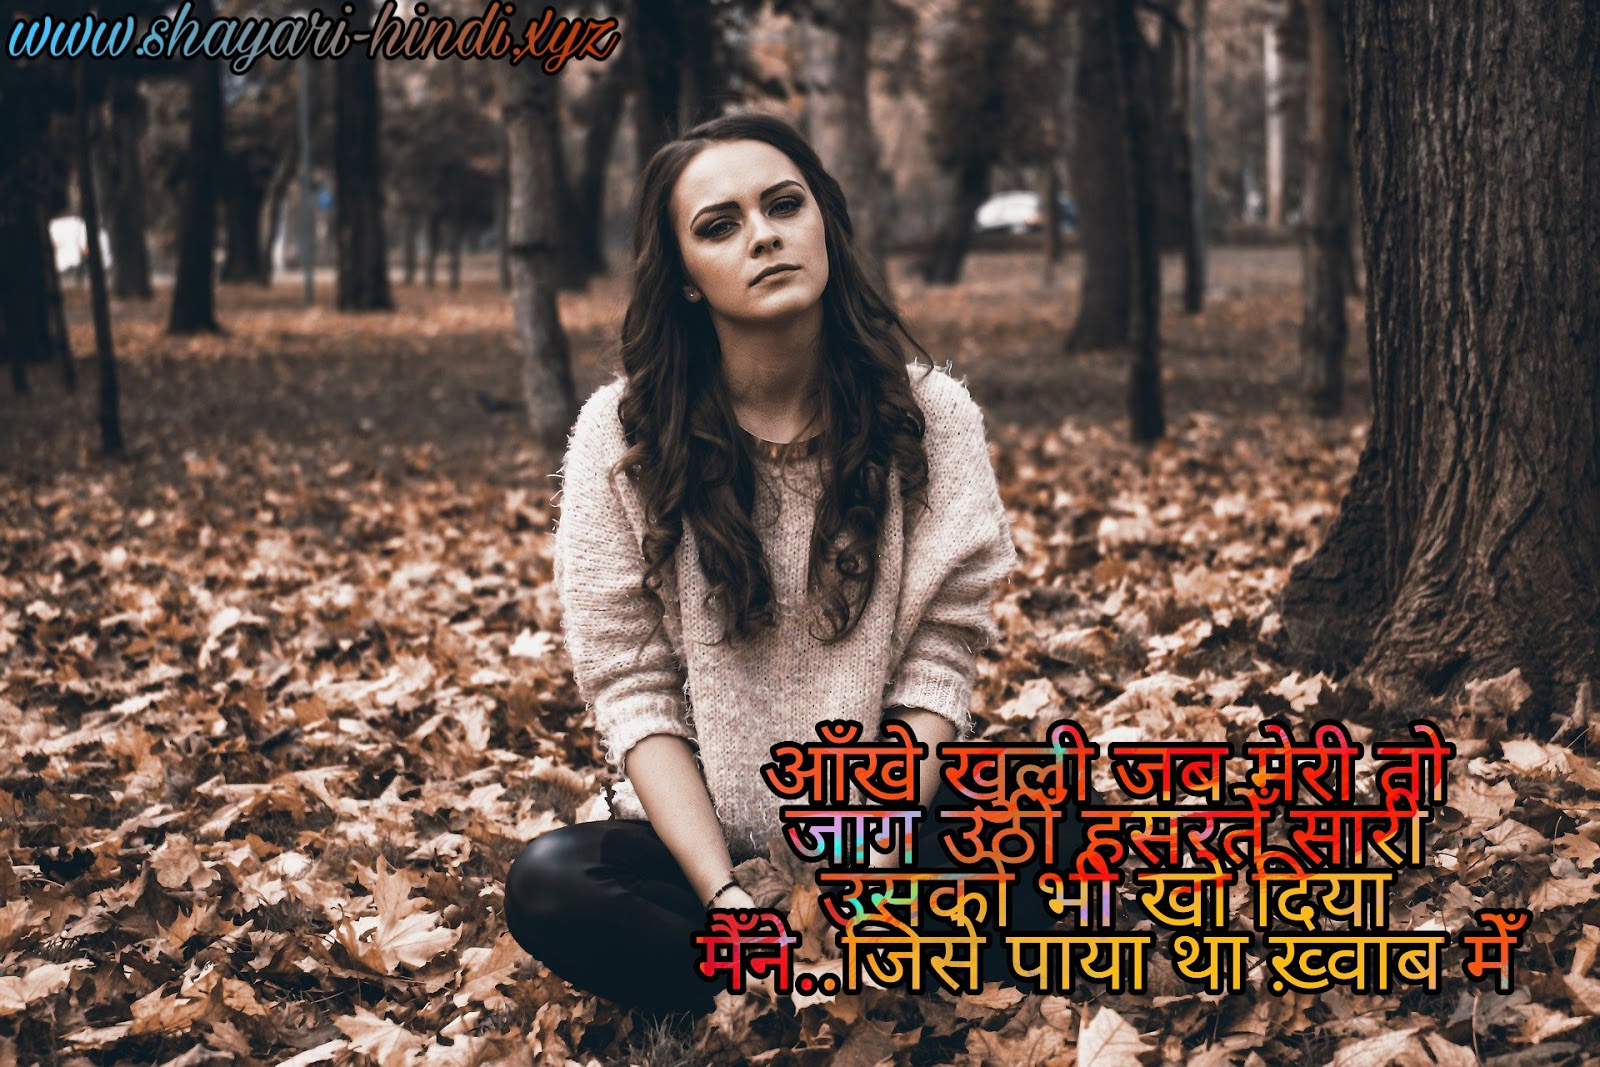 20 new  sad shayari in hindi for facebook,whatsapp,instagram